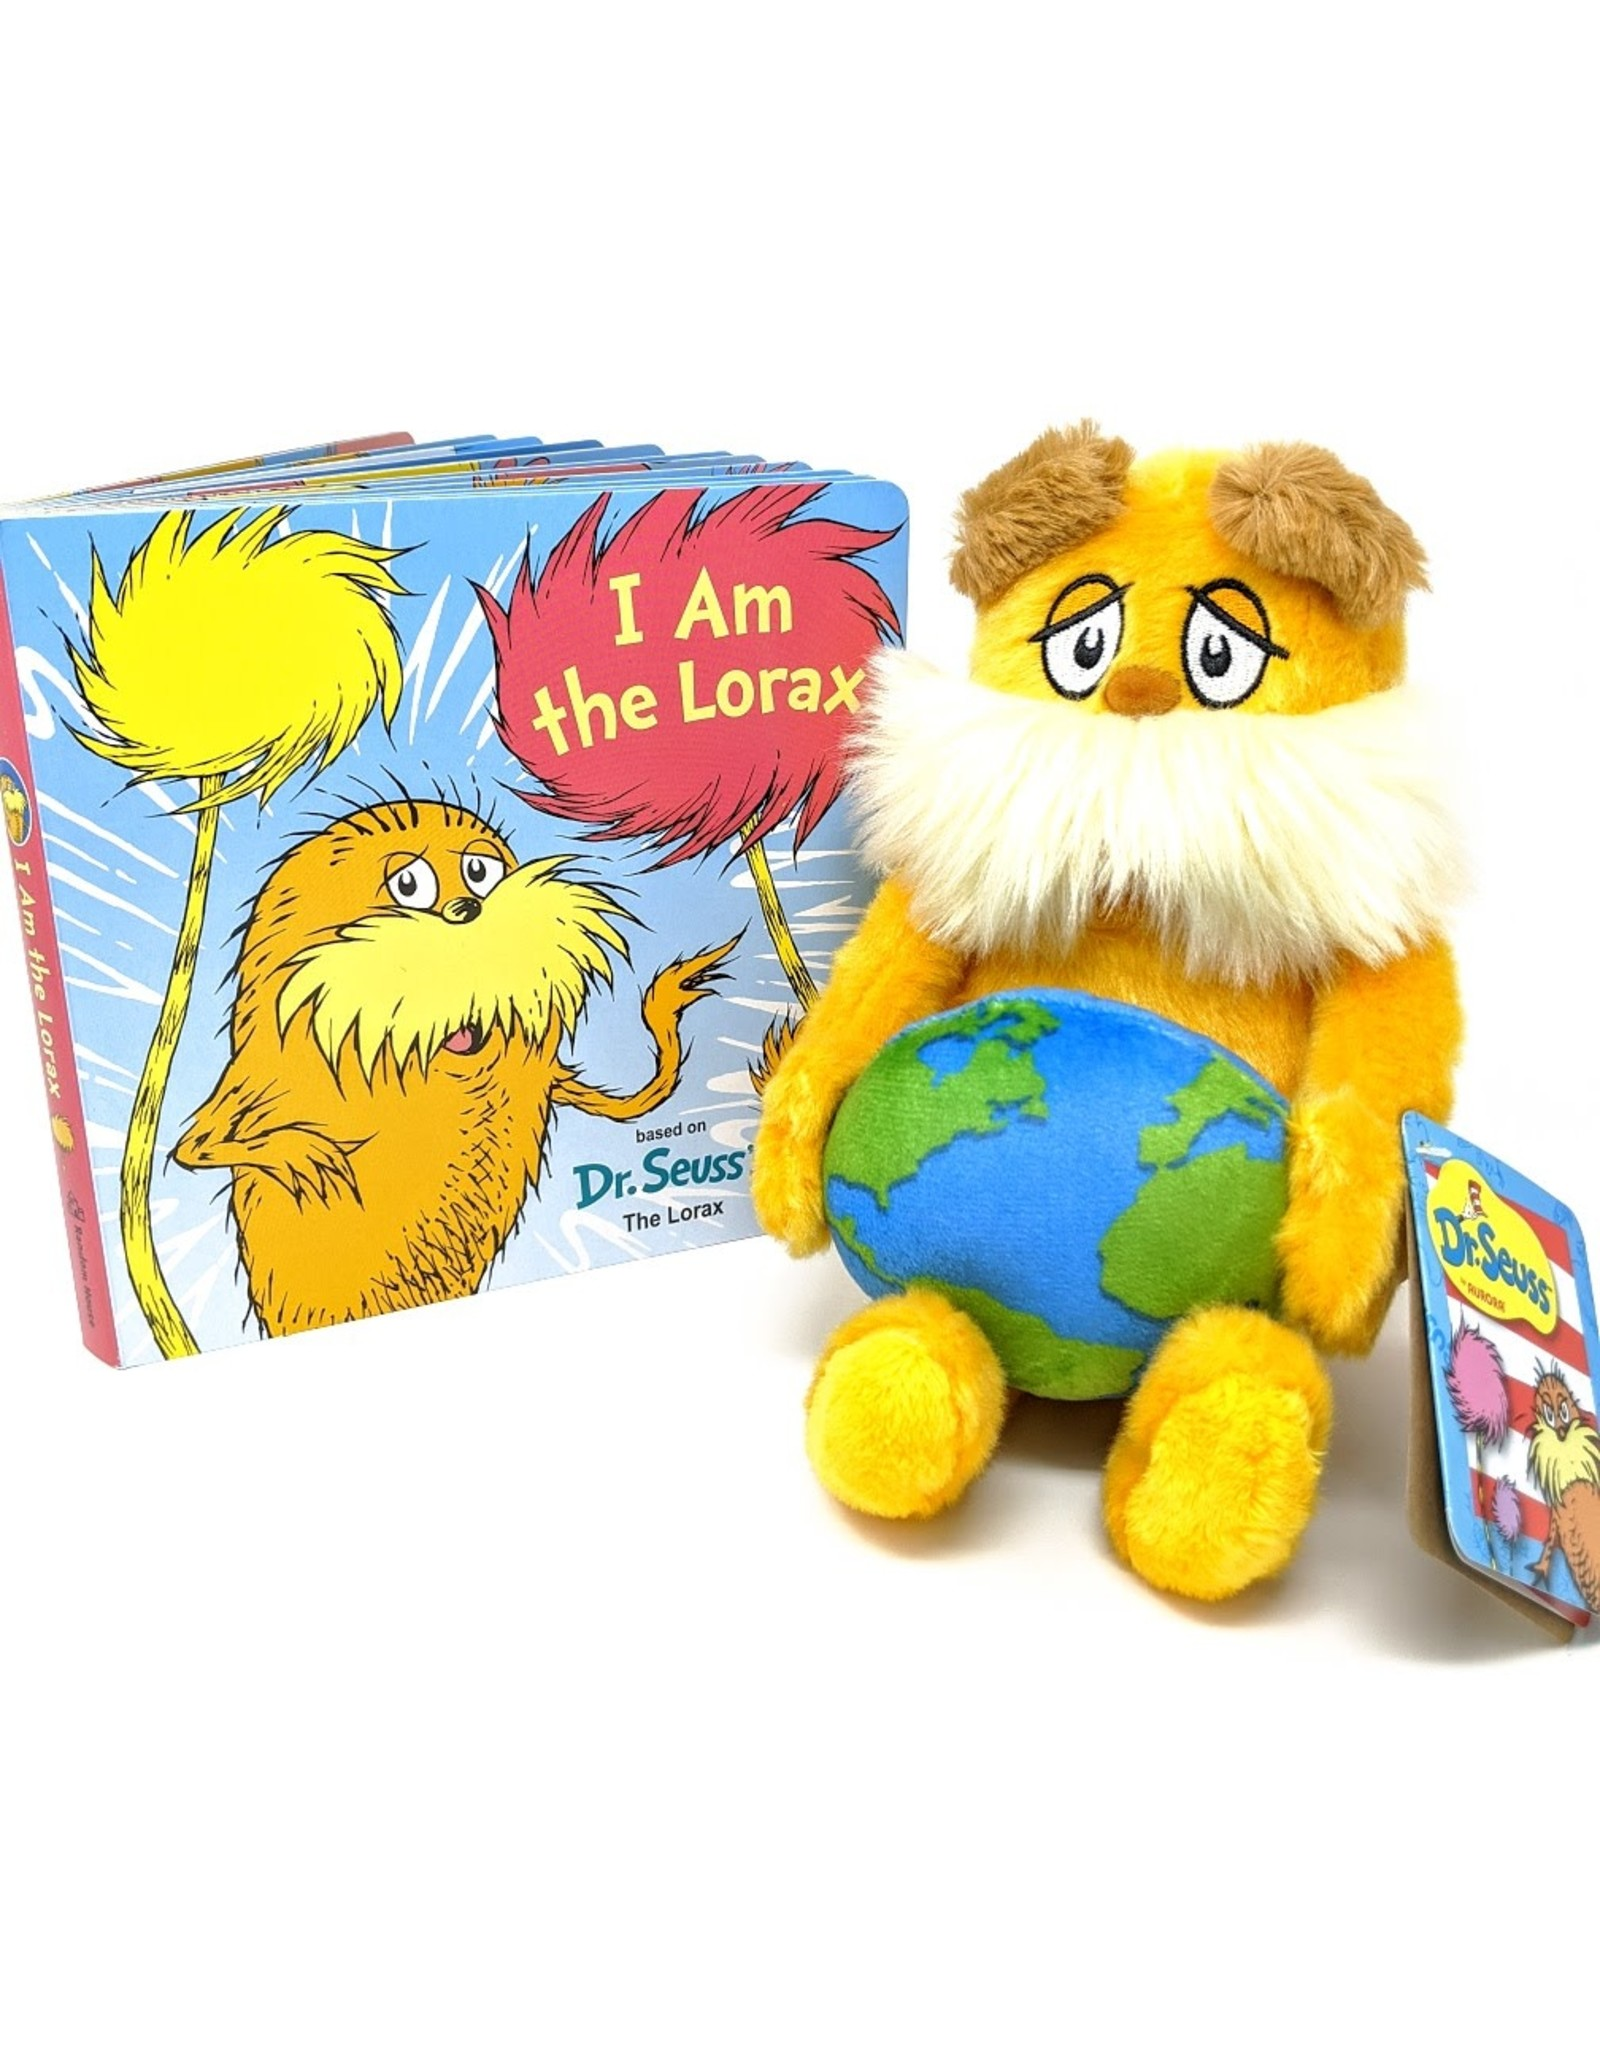 Dr. Seuss Dr. Seuss Gift Package - I Am The Lorax with world plush